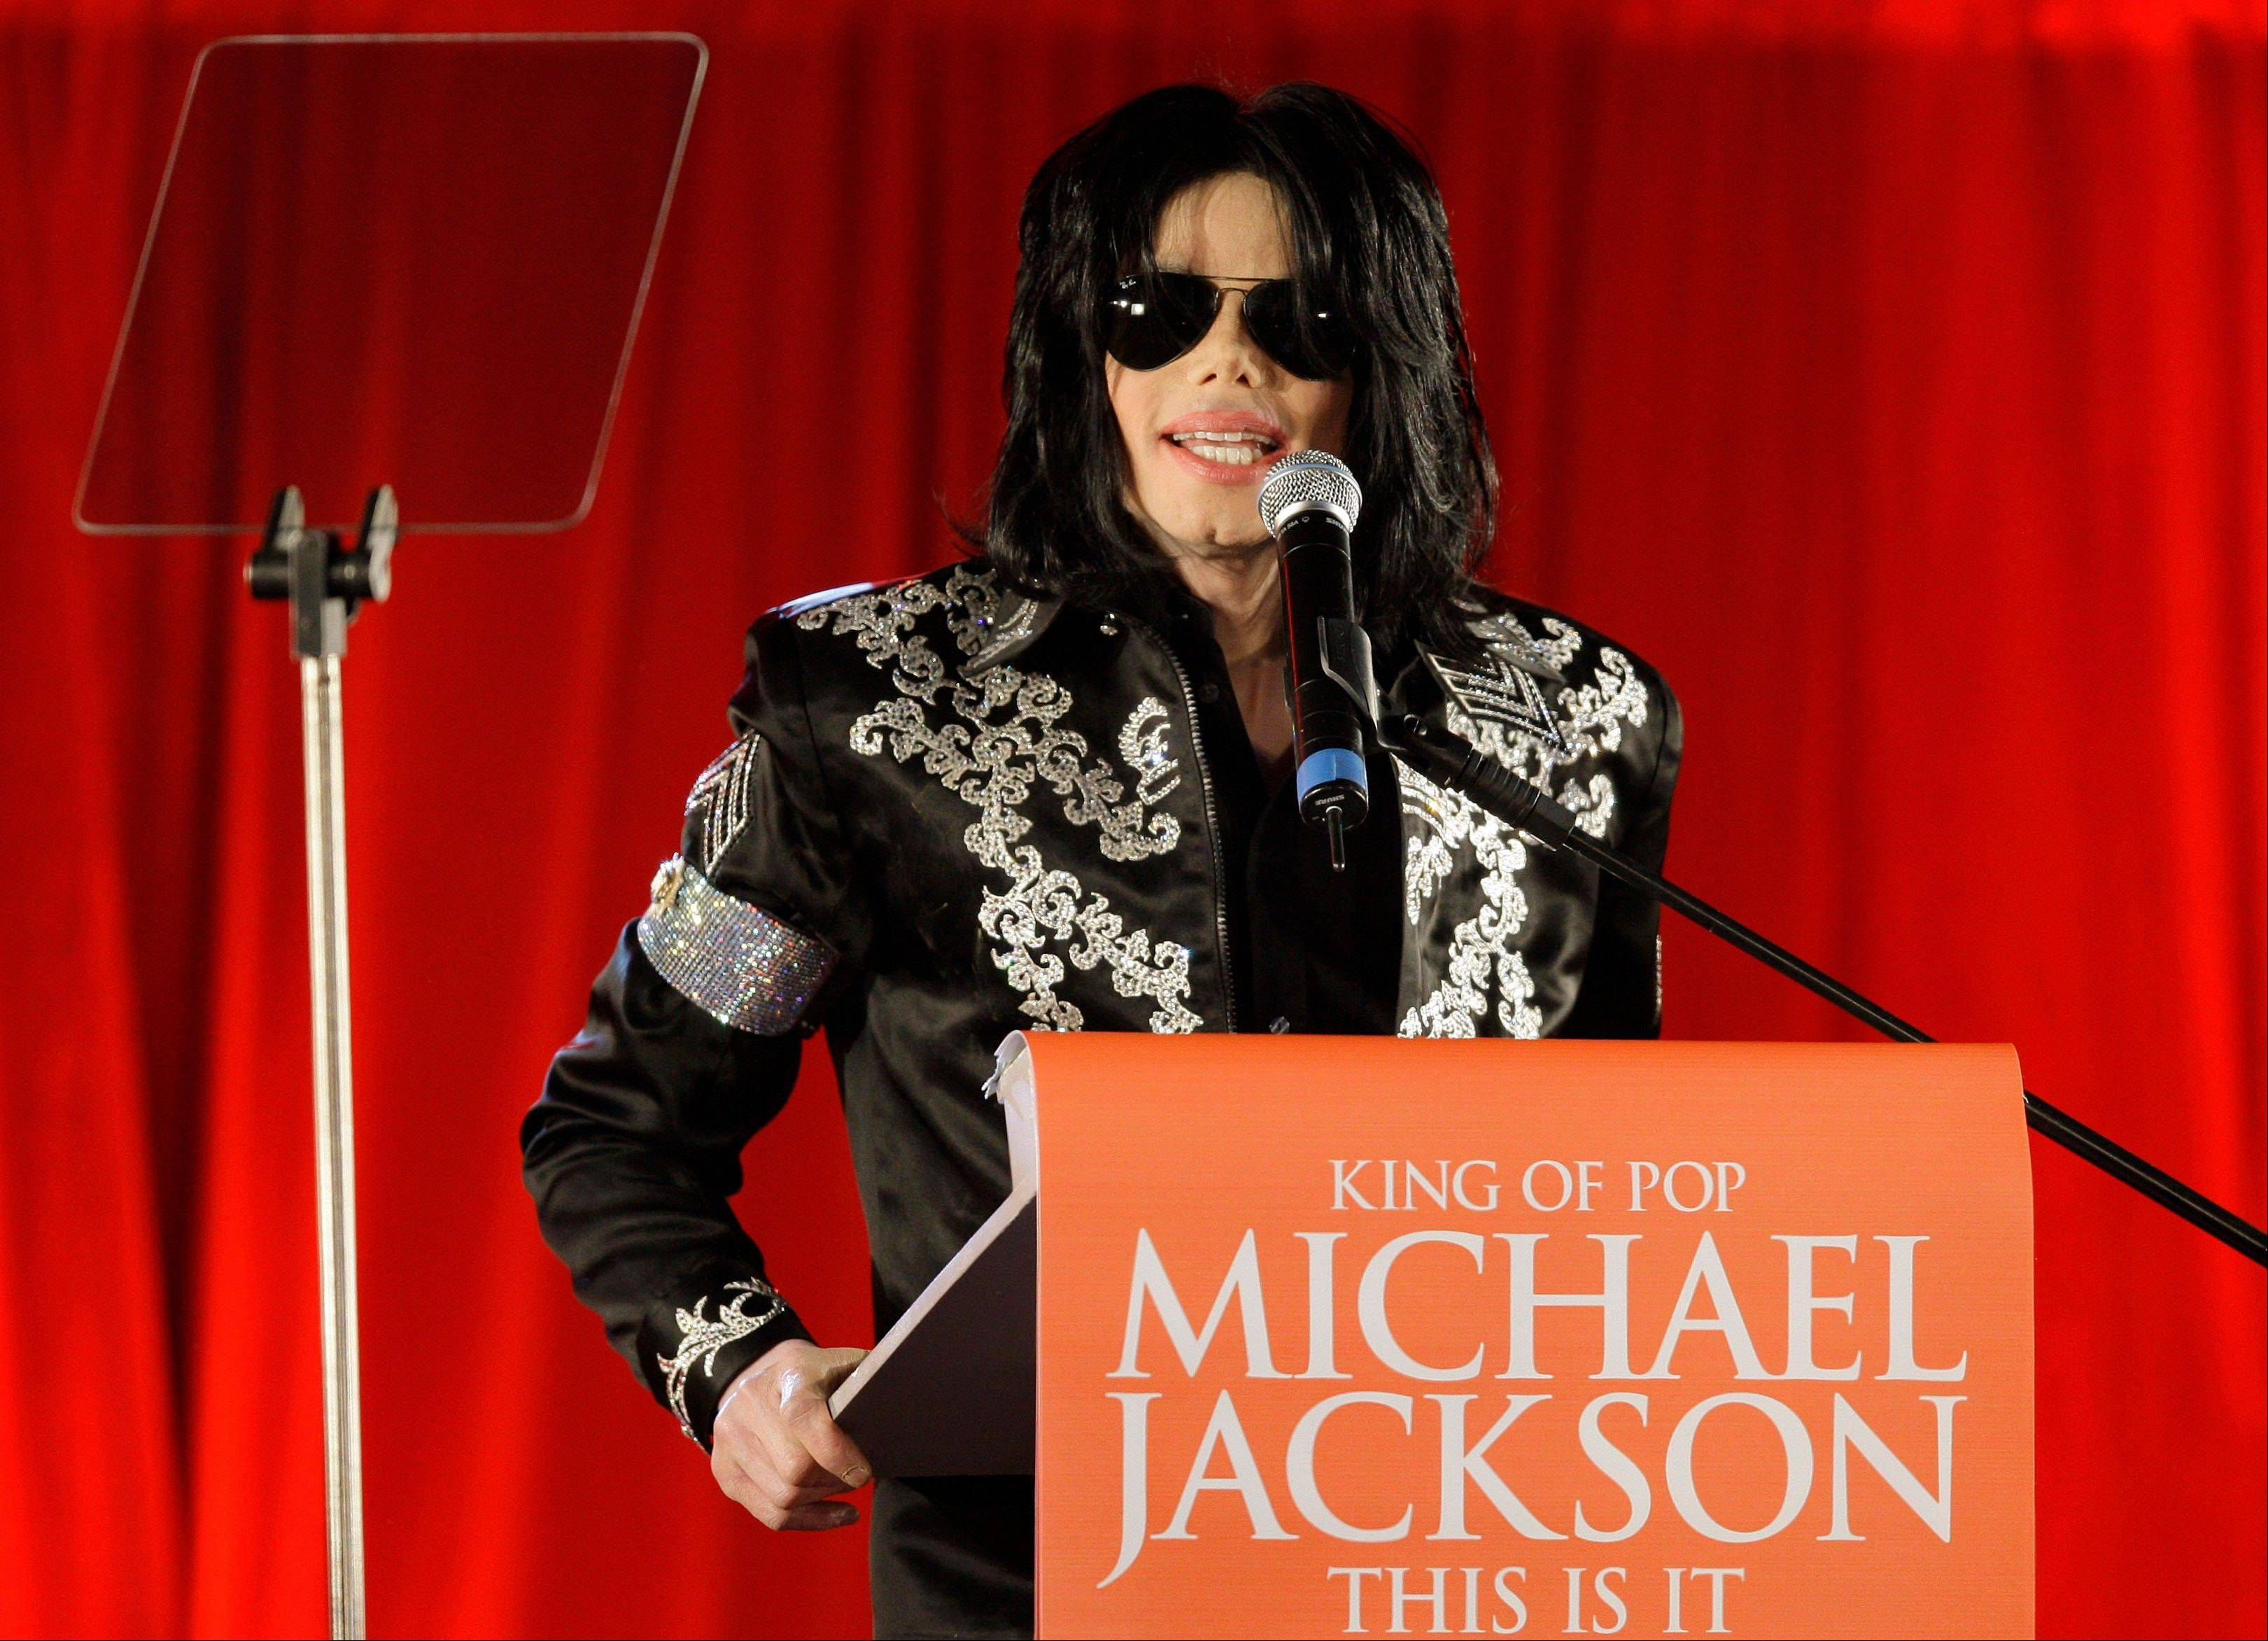 A Los Angeles jury on Wednesday rejected the claim in Katherine Jackson's long-running negligence case against AEG Live LLC that accused the concert promoter of being responsible for hiring the doctor convicted of killing her son in 2009.